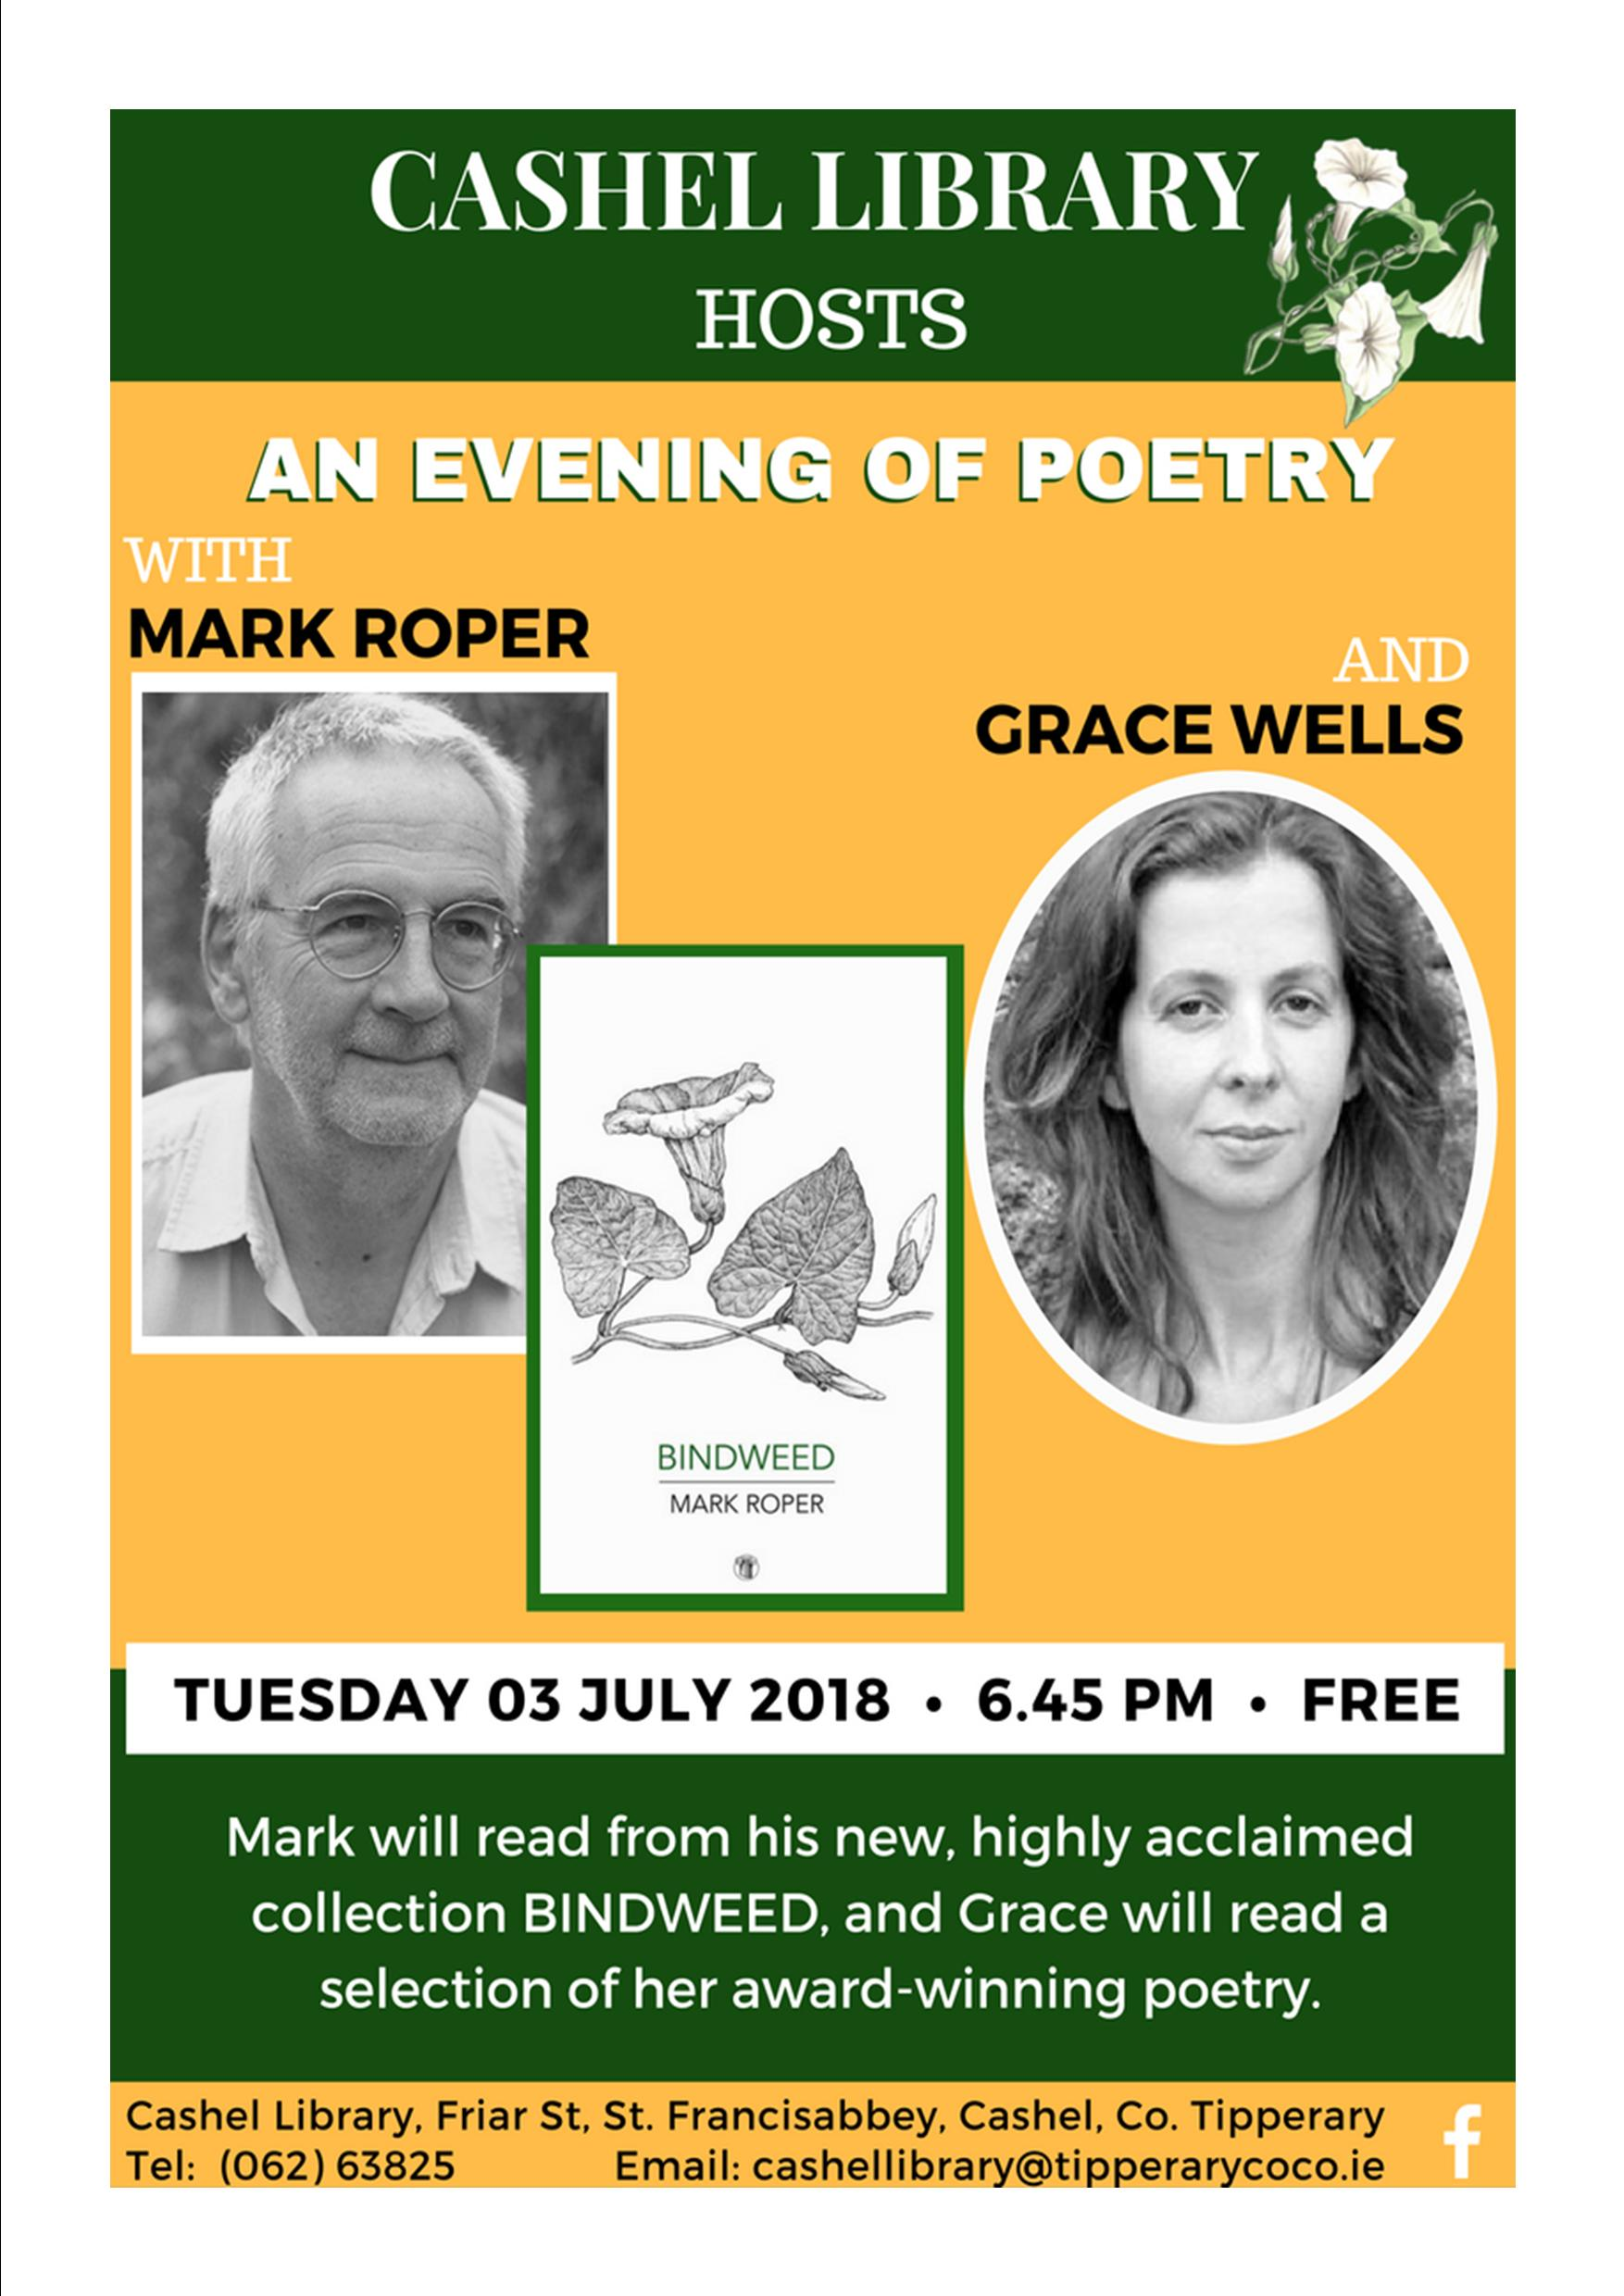 Evening of Poetry in Cashel Library, July 3rd at 6:45pm